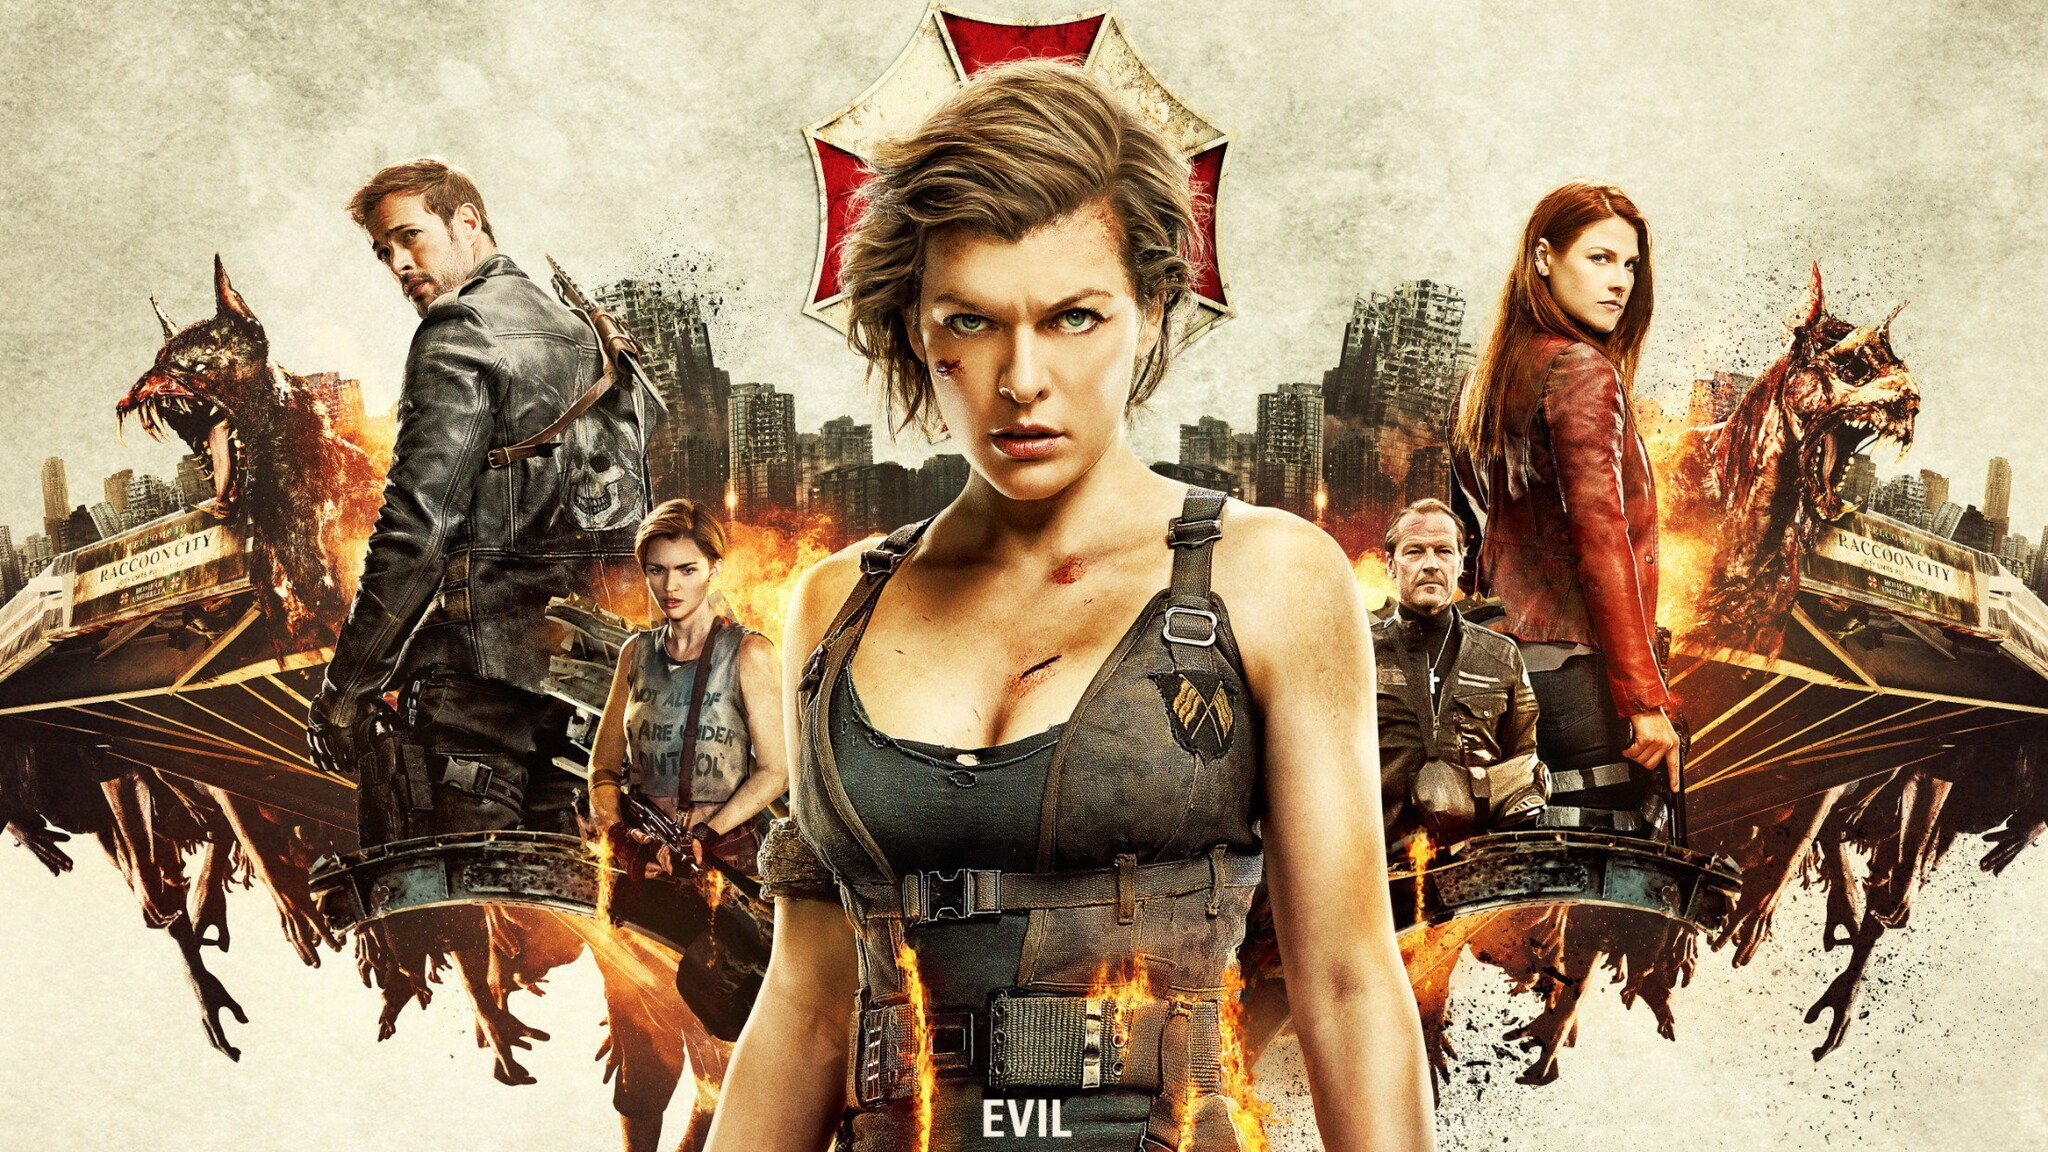 2048x1152 Final Fantasy Xv 2016 2048x1152 Resolution Hd 4k: 2048x1152 Resident Evil The Final Chapter 4k 2016 Movie